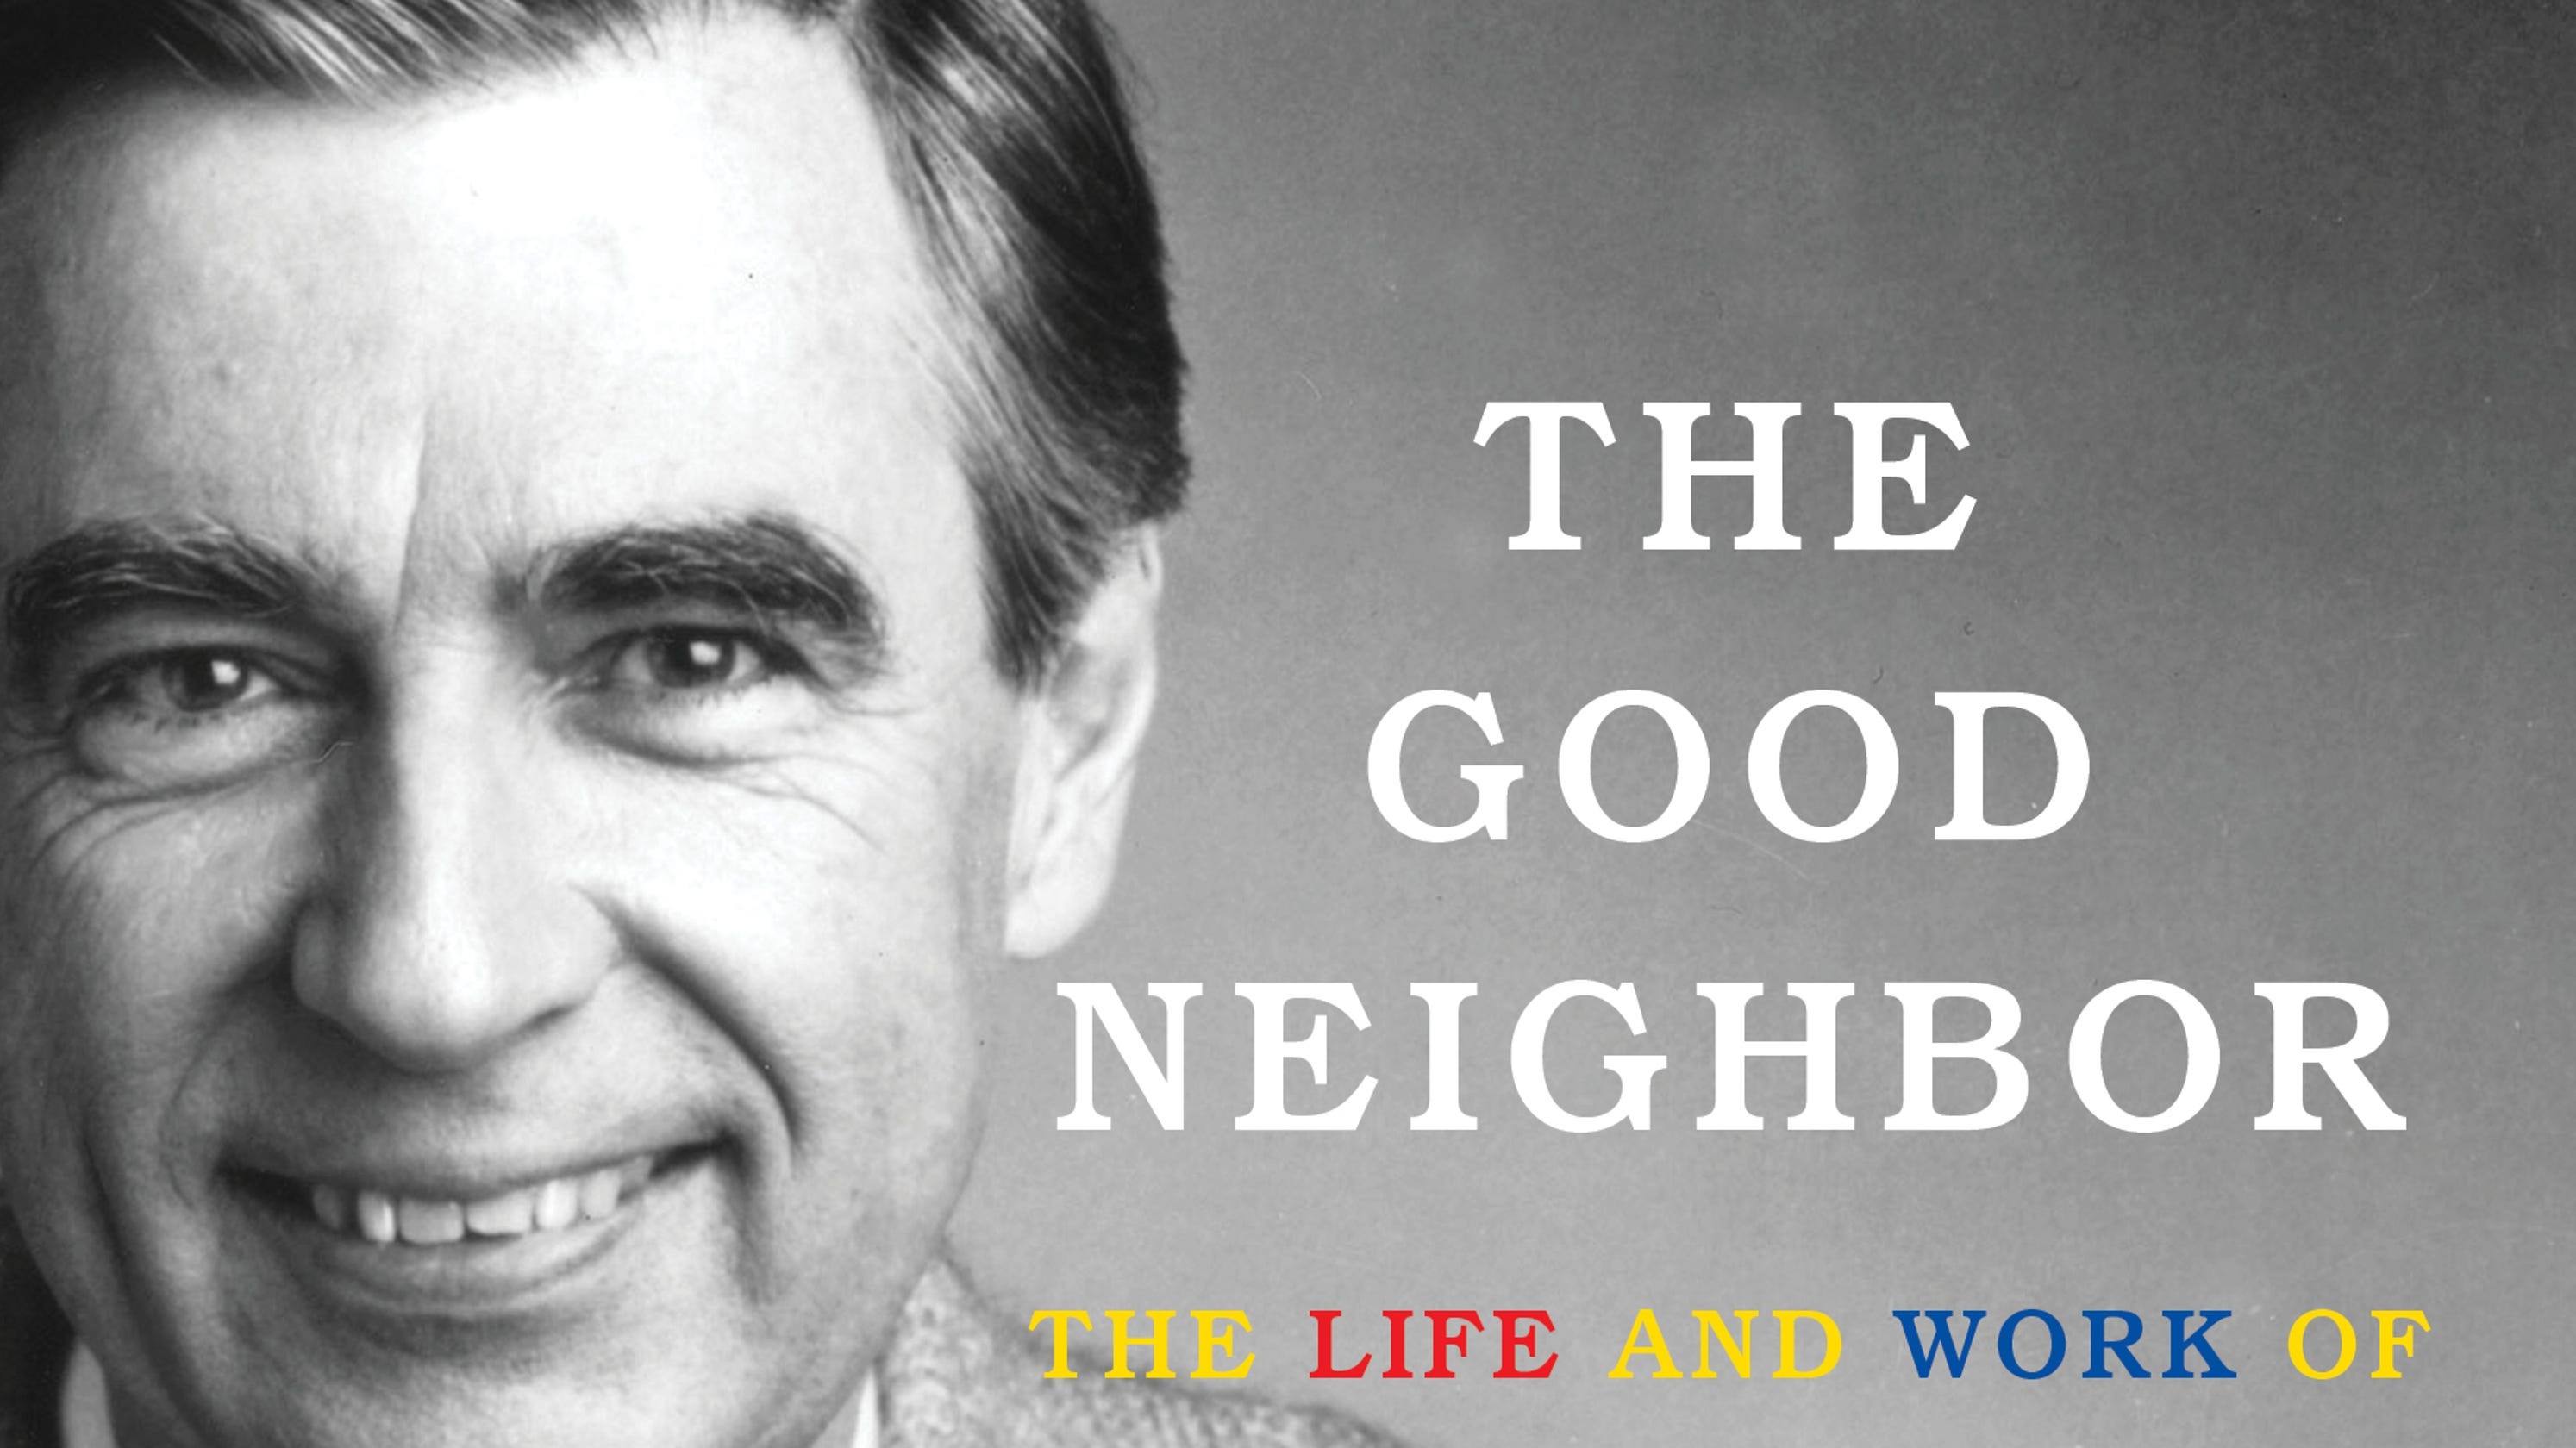 Fred Rogers biography: 5 things we learn from 'The Good